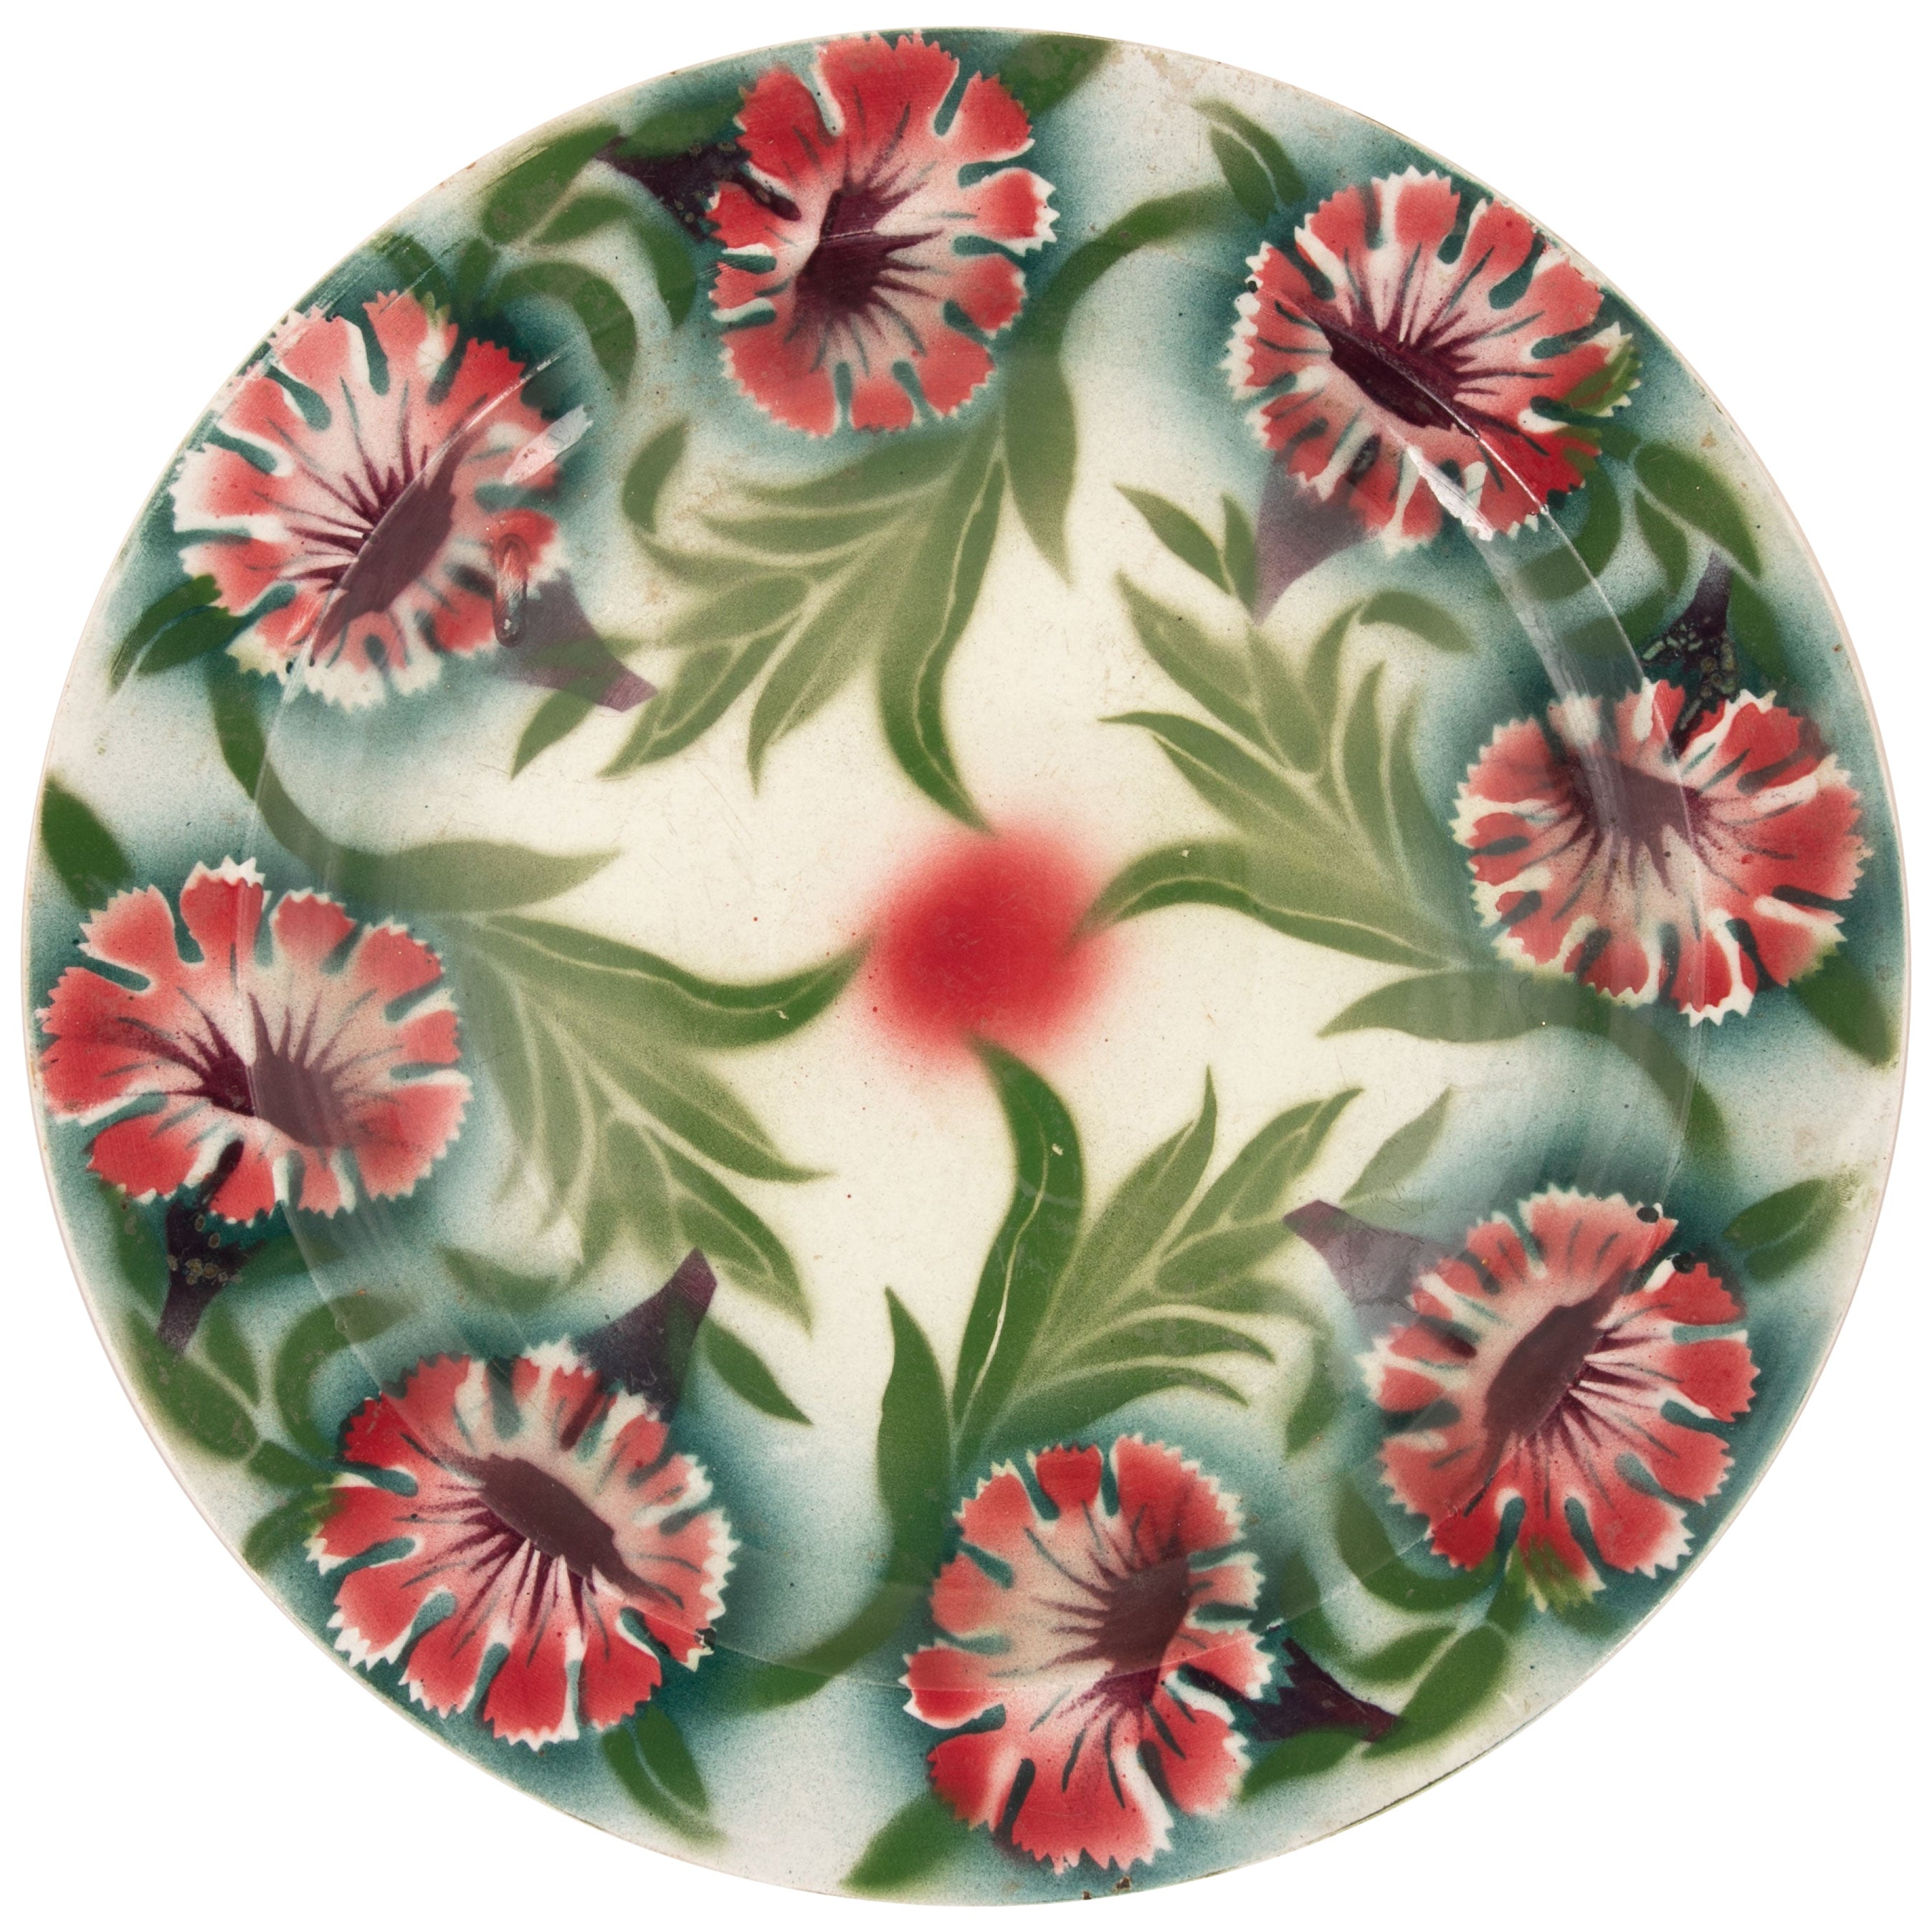 Kuznetsov Ceramic Plate, Russia, Early 20th Century